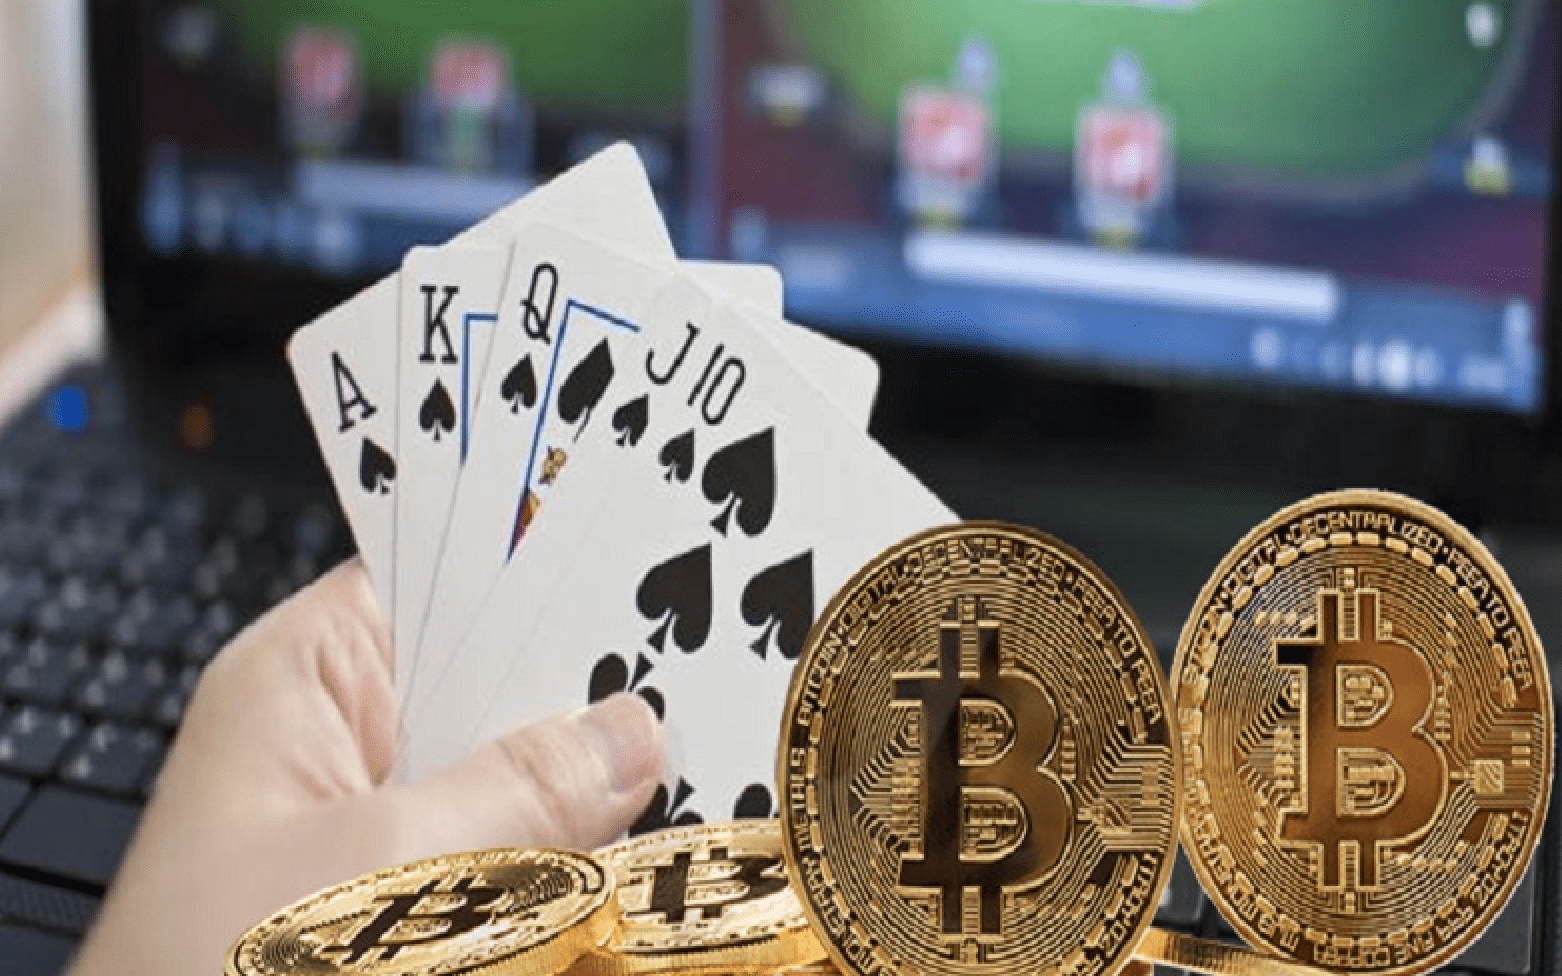 How Cryptocurrencies Are Being Implemented Into Online Games